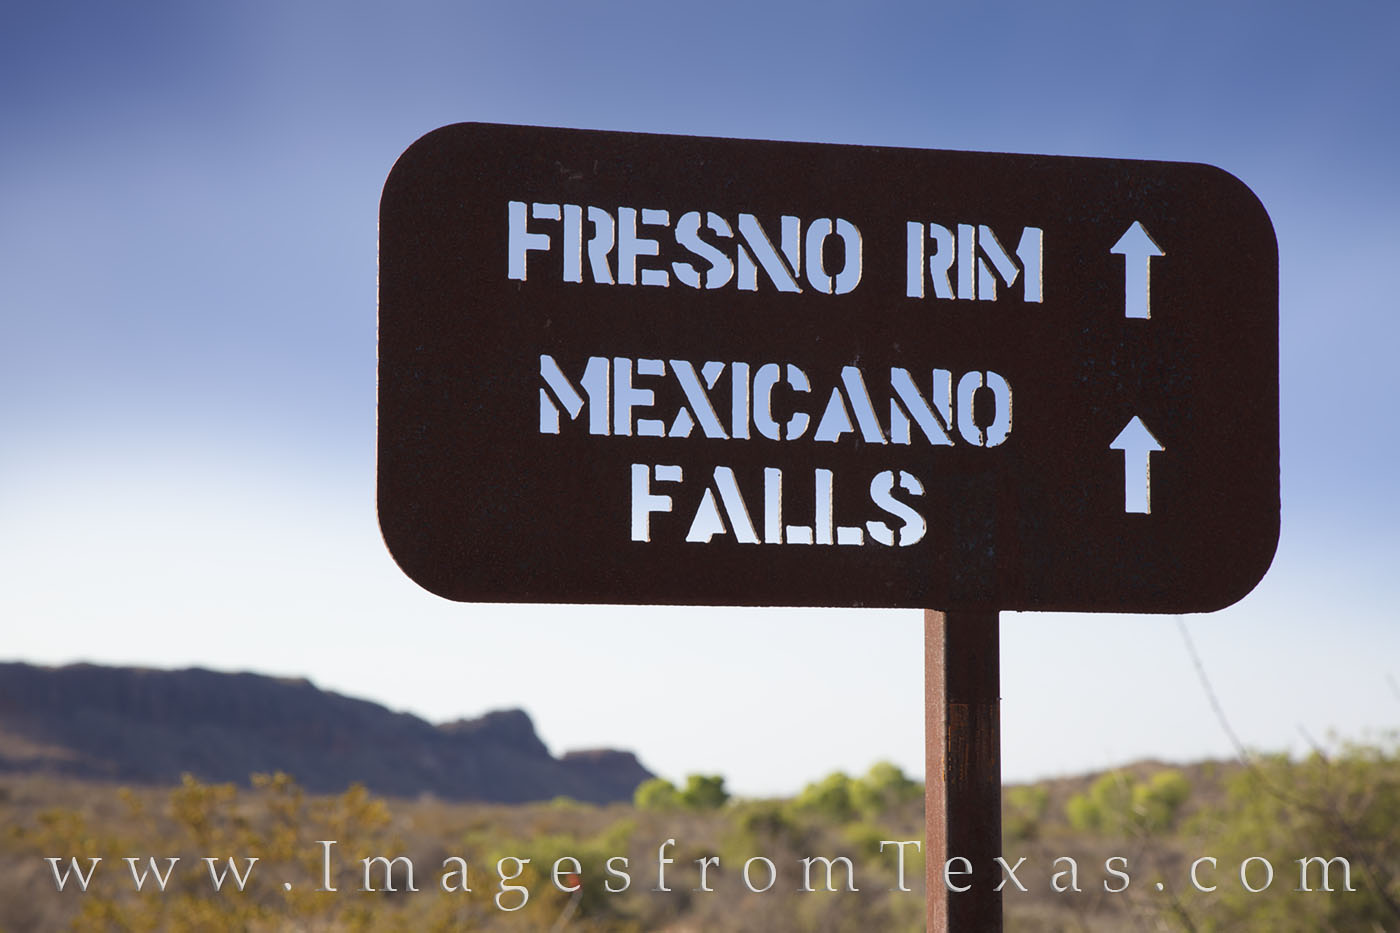 big bend ranch, fresno rim, trail sign, trailhead, hiking west texas, photo